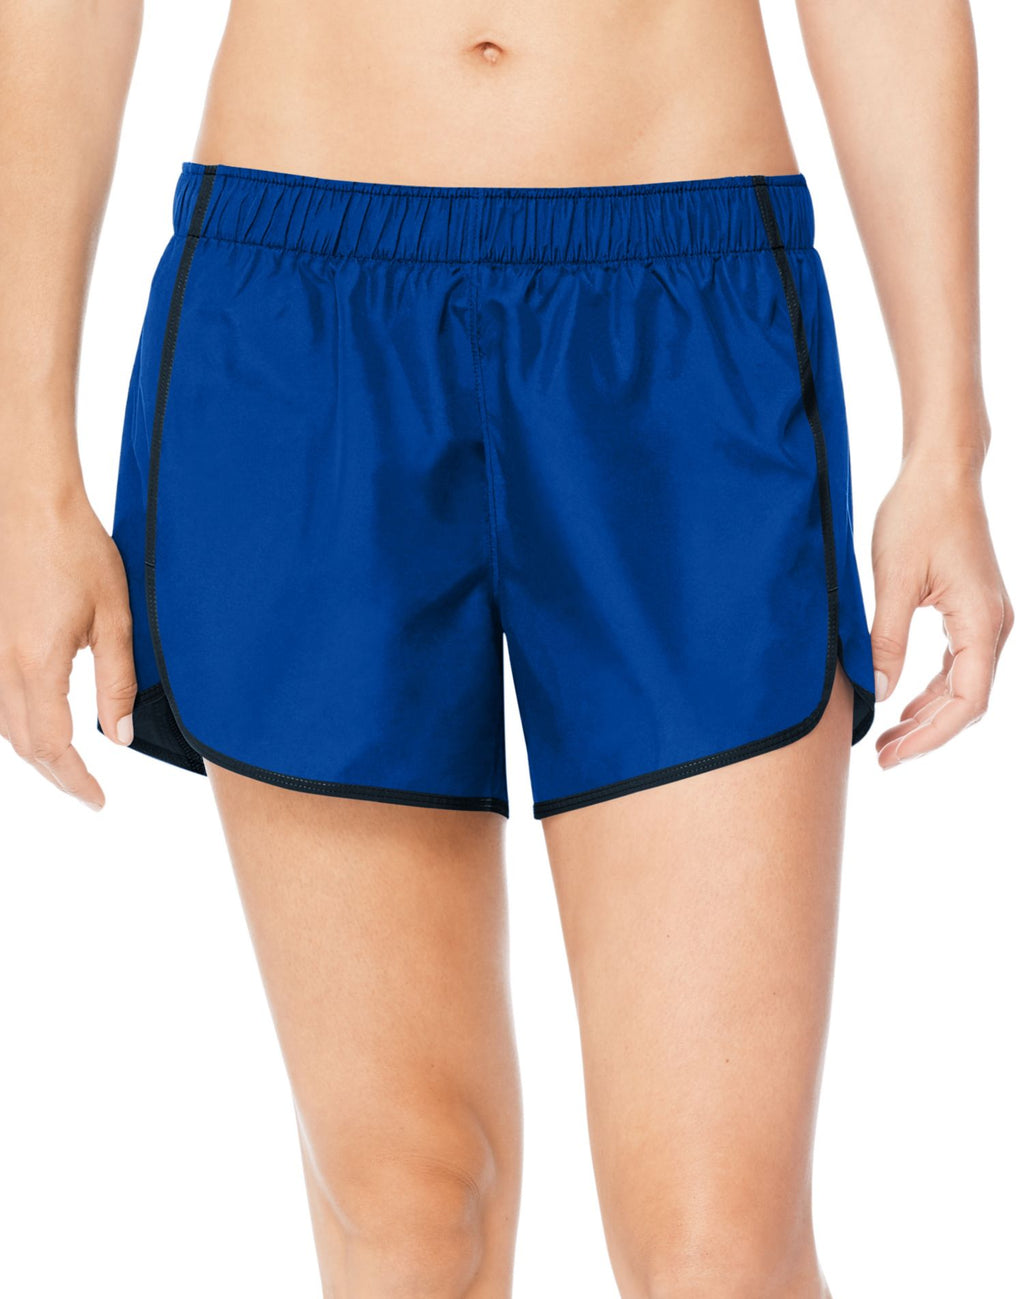 Hanes Womens Sport Performance Running Shorts